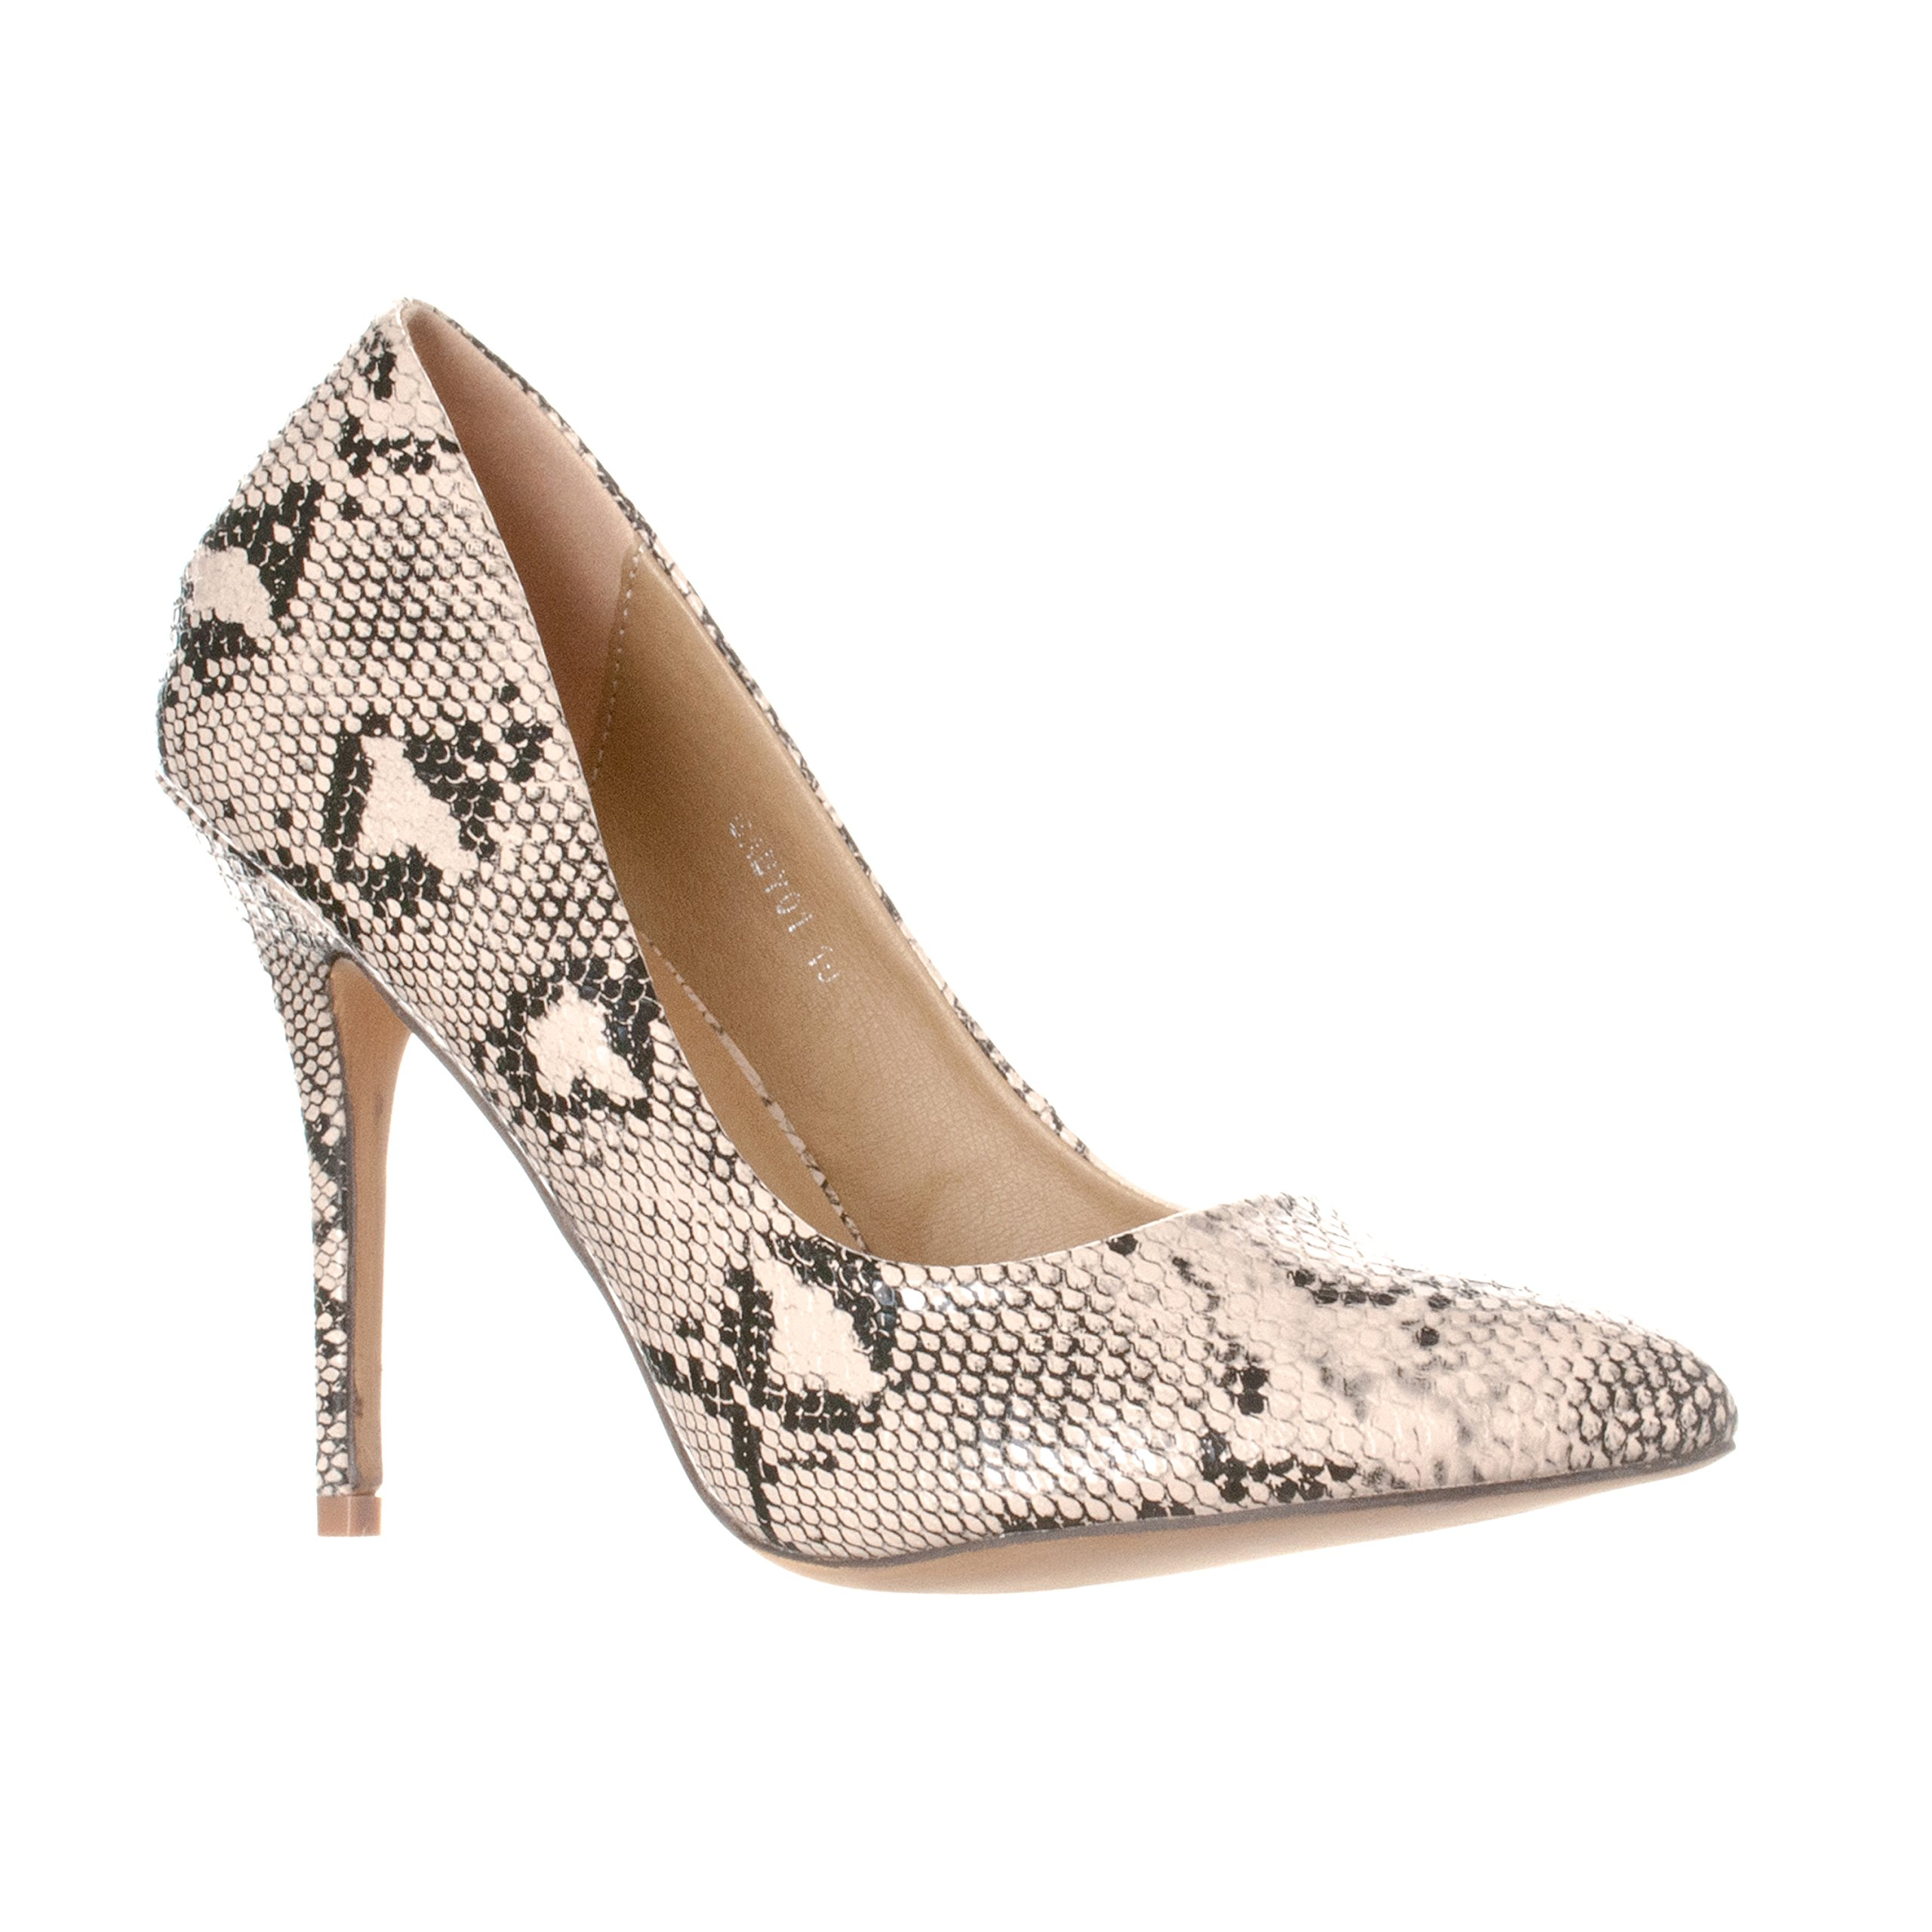 Riverberry Women's Gaby Pointed, Closed Toe Stiletto Pump Heels, Beige Python, 10